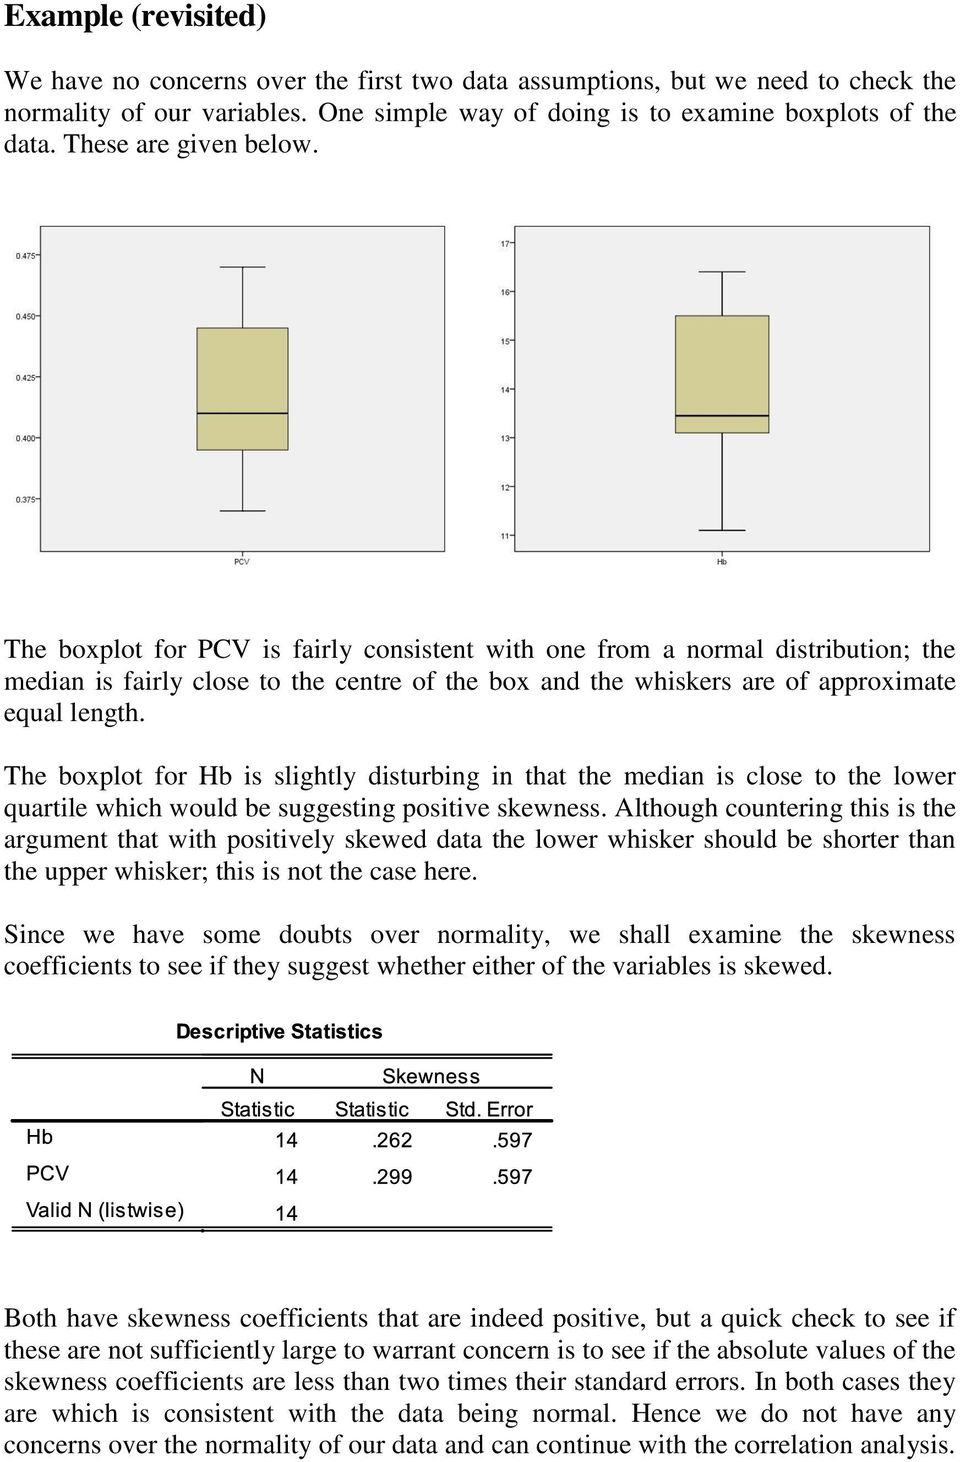 The boxplot for PCV is fairly consistent with one from a normal distribution; the median is fairly close to the centre of the box and the whiskers are of approximate equal length.